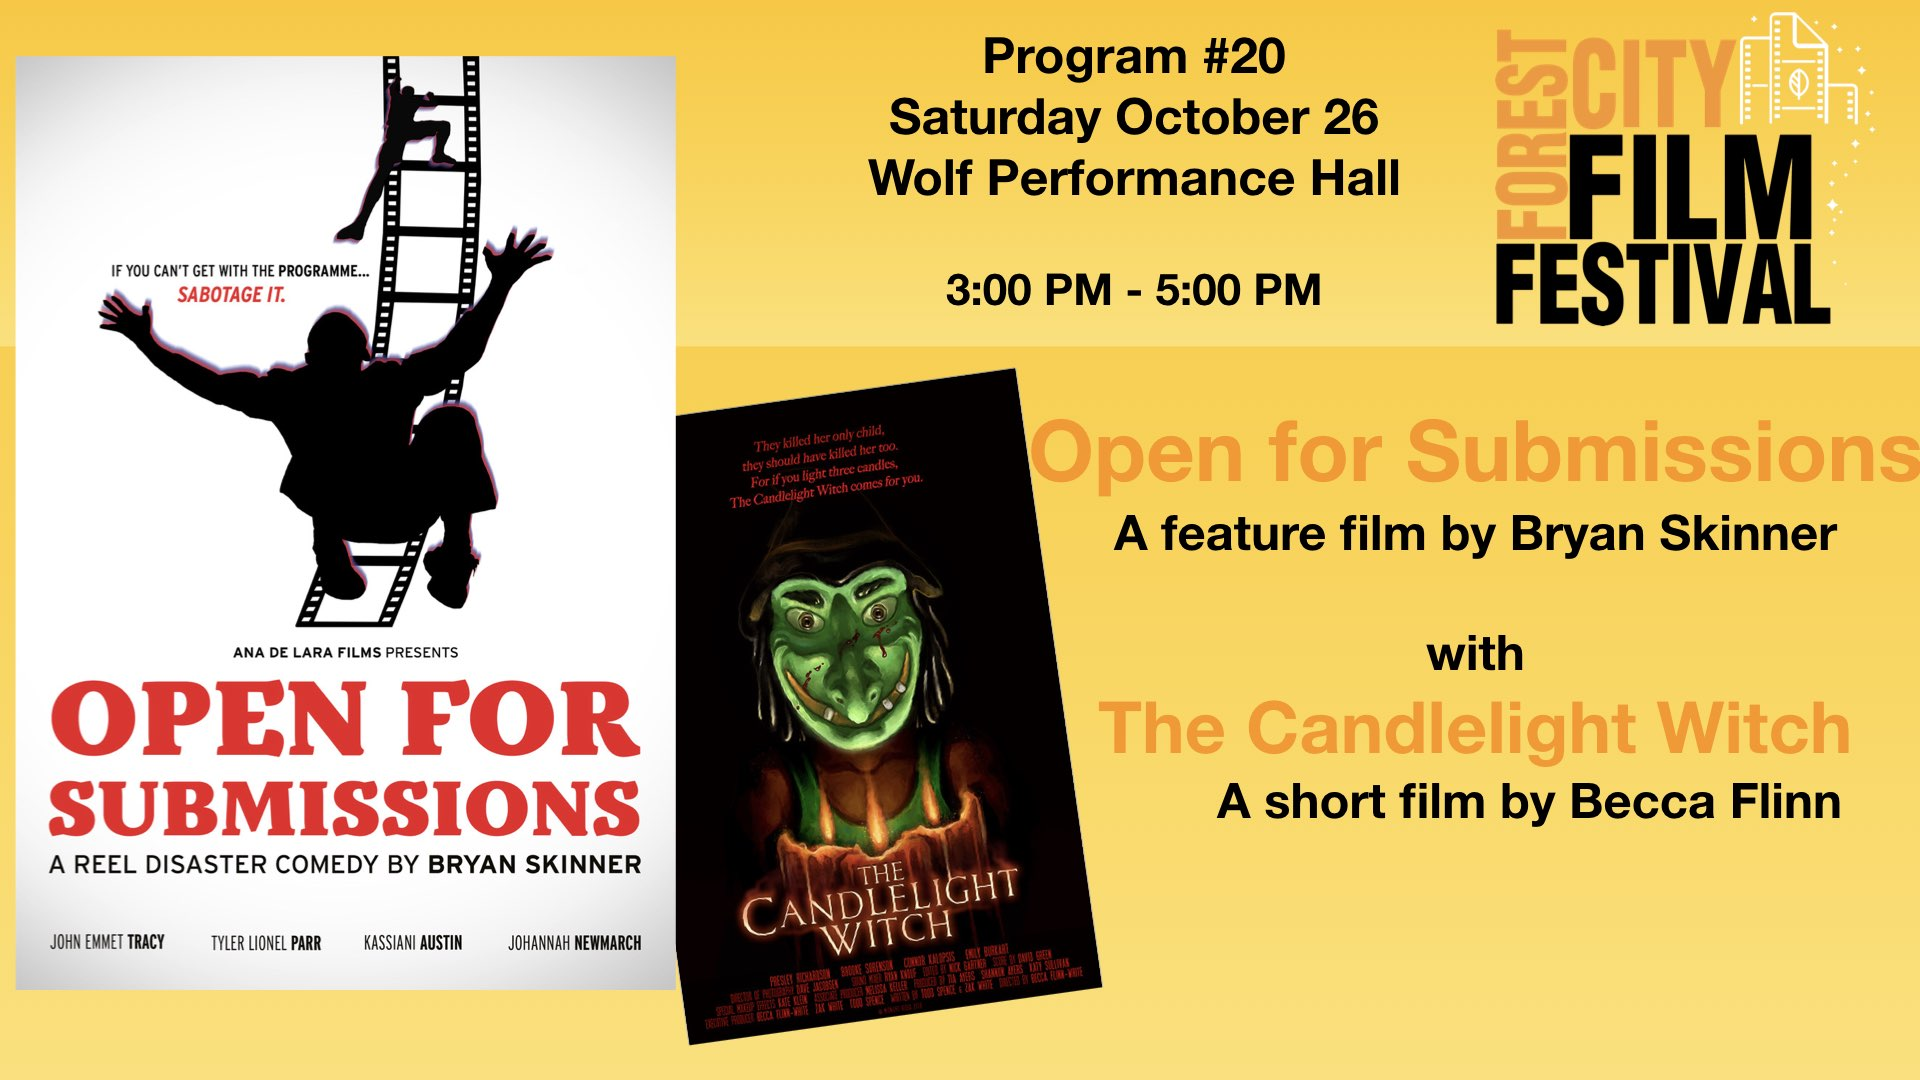 FCFF 2019 - Saturday Early Afternoon at Wolf Program #20 - Open for Submission & The Candlelight Witch